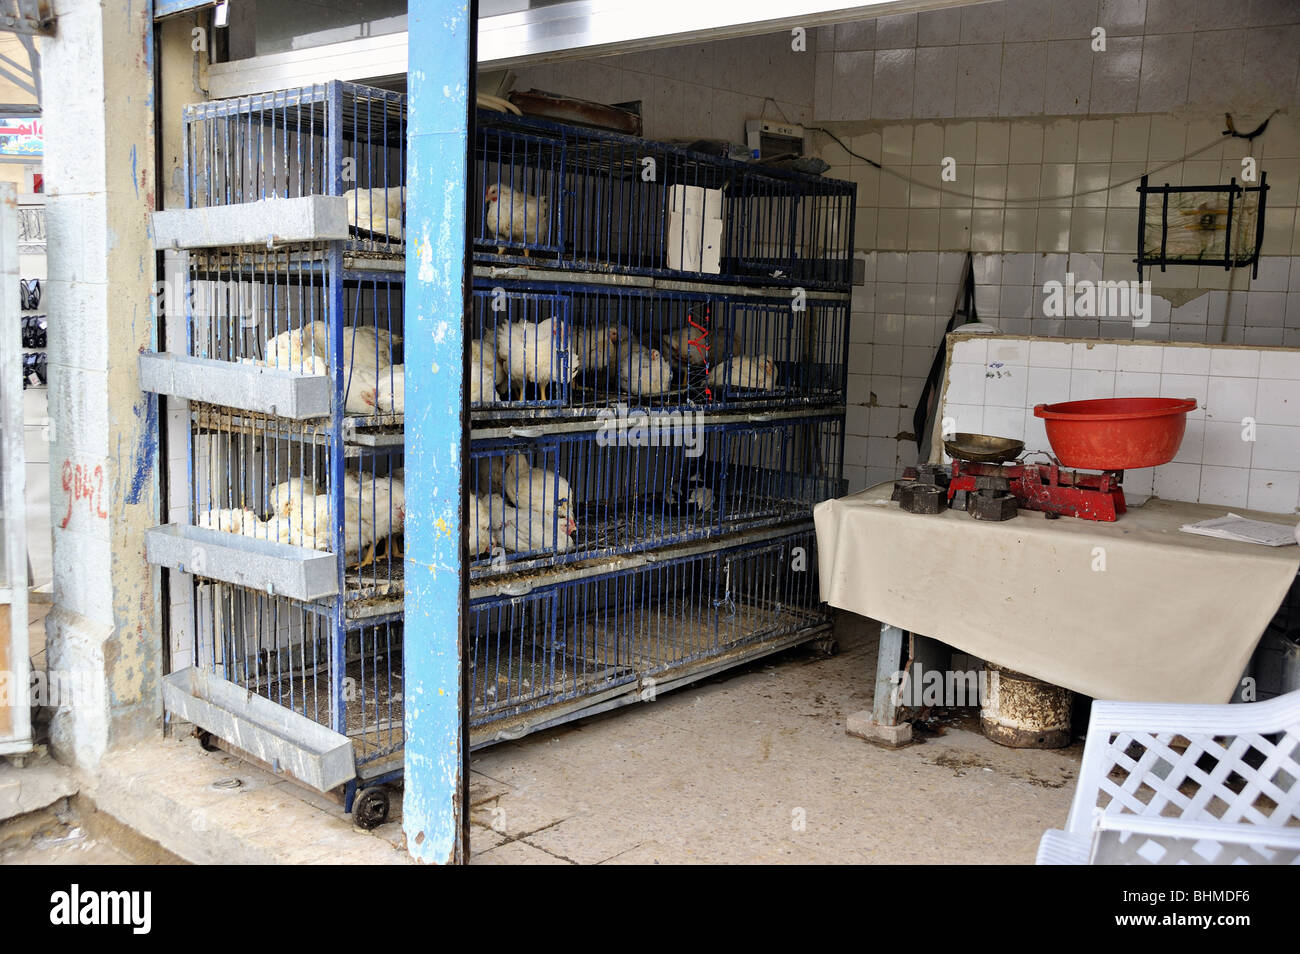 Hens in a cage for sale Madaba,Jordan - Stock Image